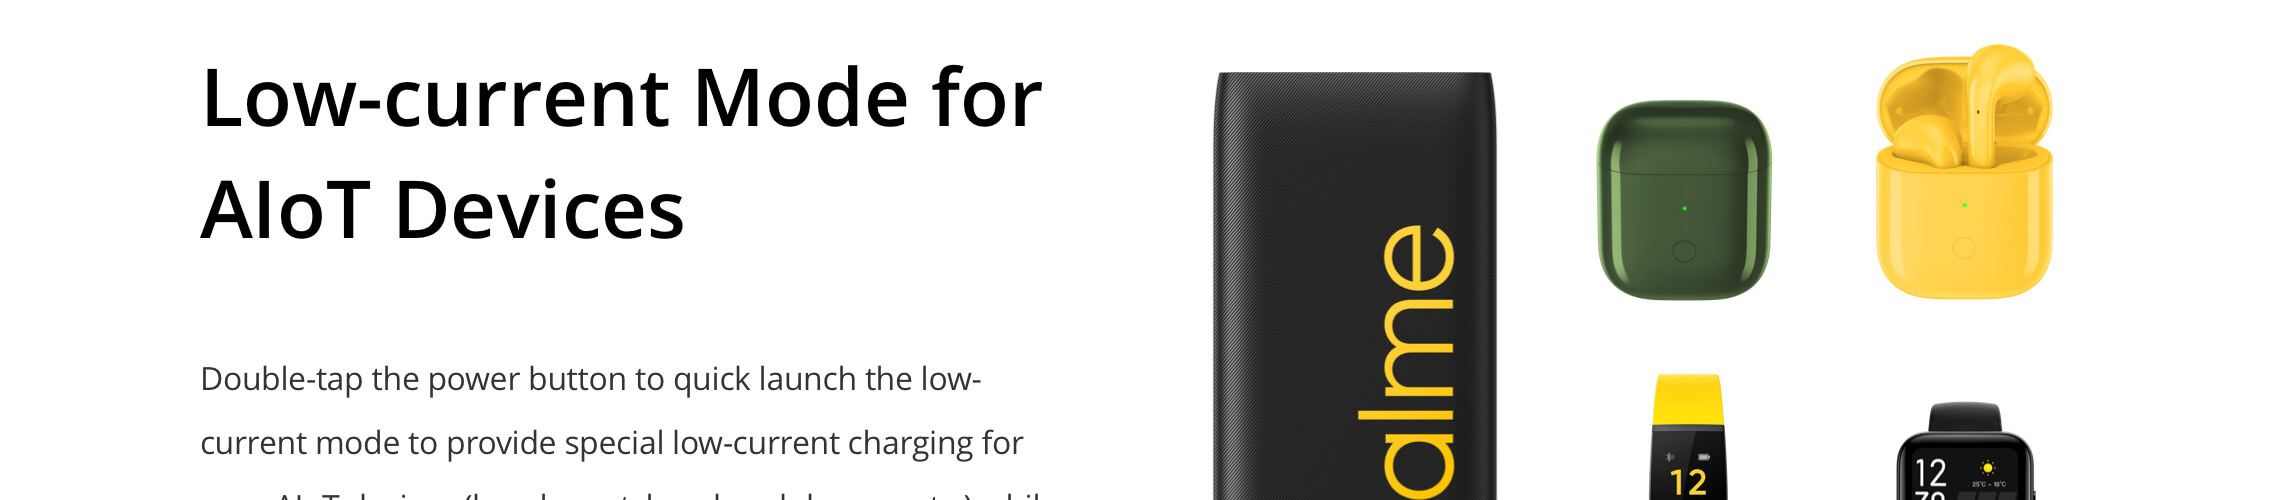 realme Power Bank 2 price in india